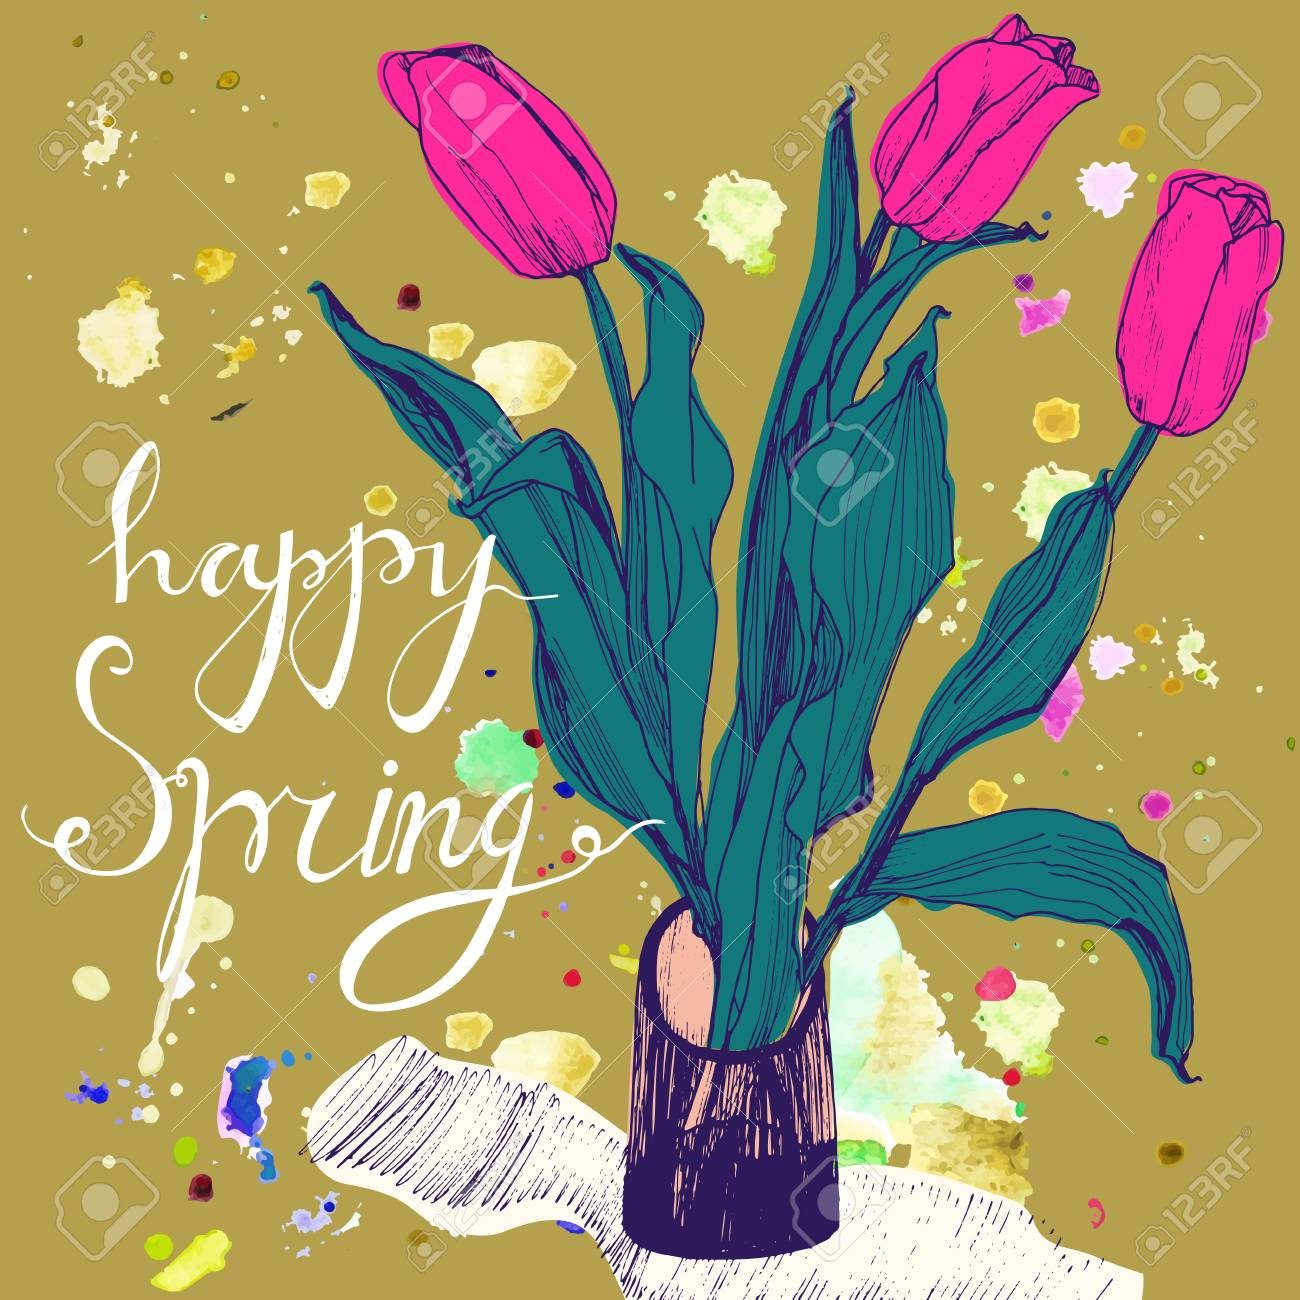 Decorative card with hand drawn tulips and text happy spring decorative card with hand drawn tulips and text happy spring greeting card for 8 march m4hsunfo